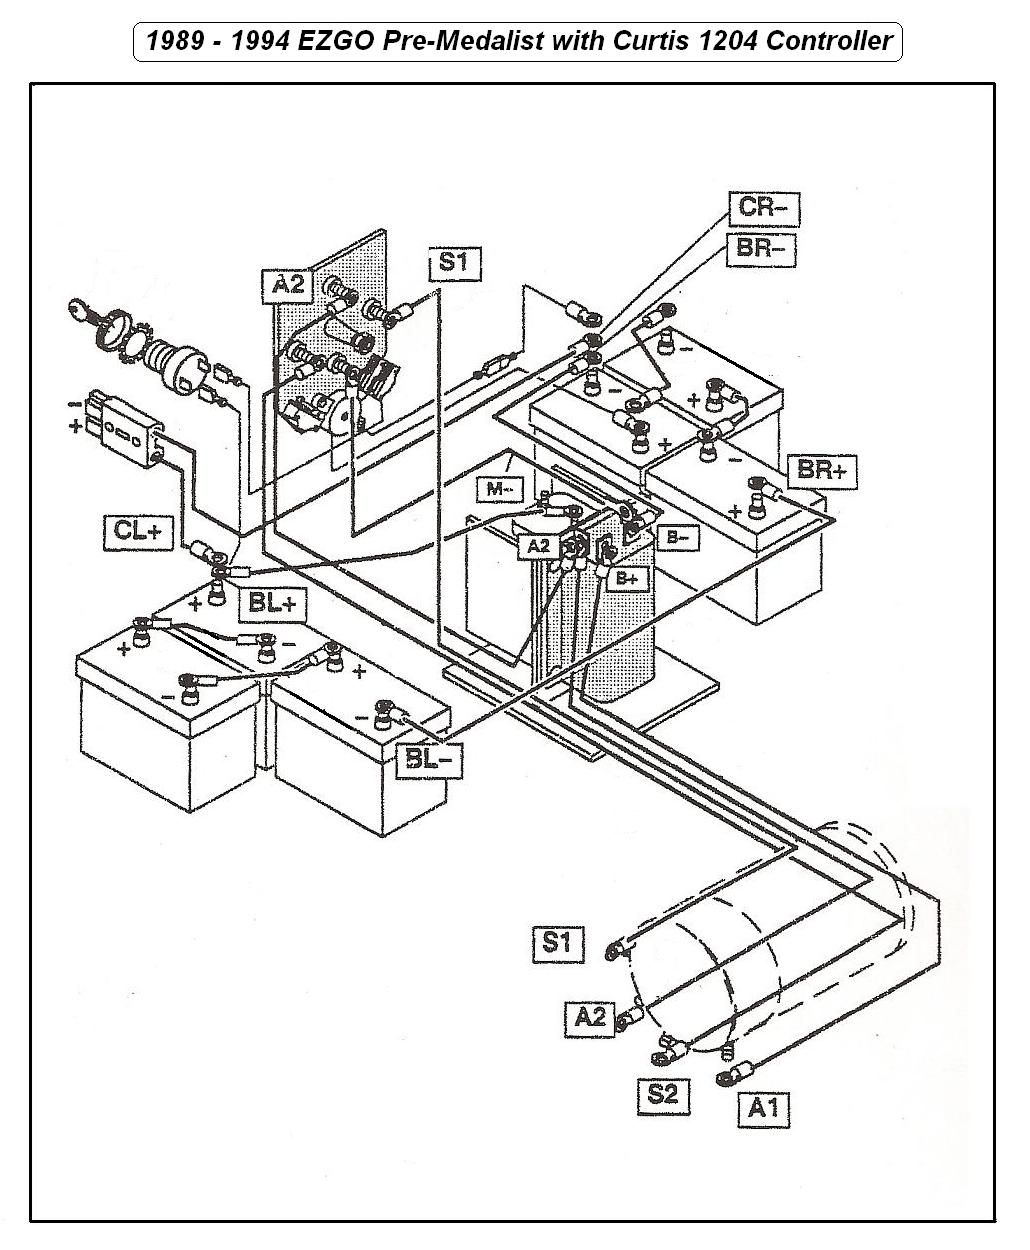 A89_94EZ_Wiring ezgo wiring diagram ezgo fuel pump \u2022 wiring diagrams j squared co ezgo golf cart wiring diagram at gsmportal.co